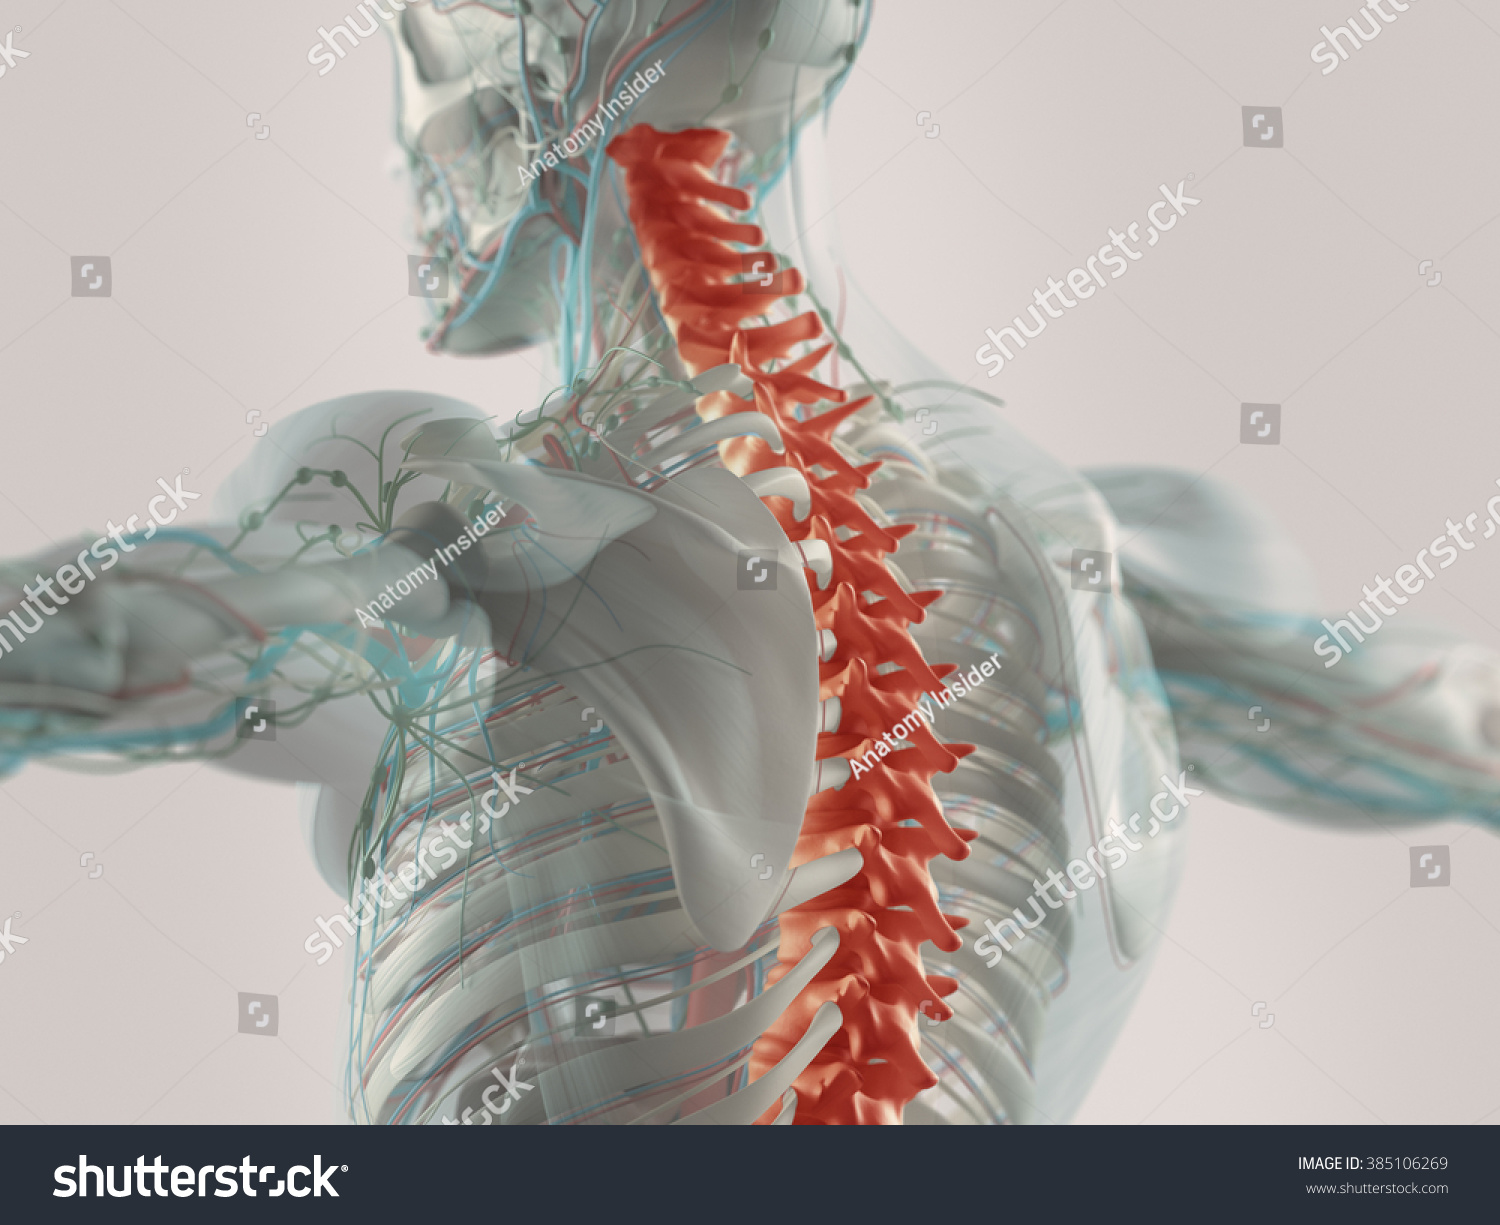 Human Anatomy Spine Pain Highlighted Red Stock Illustration